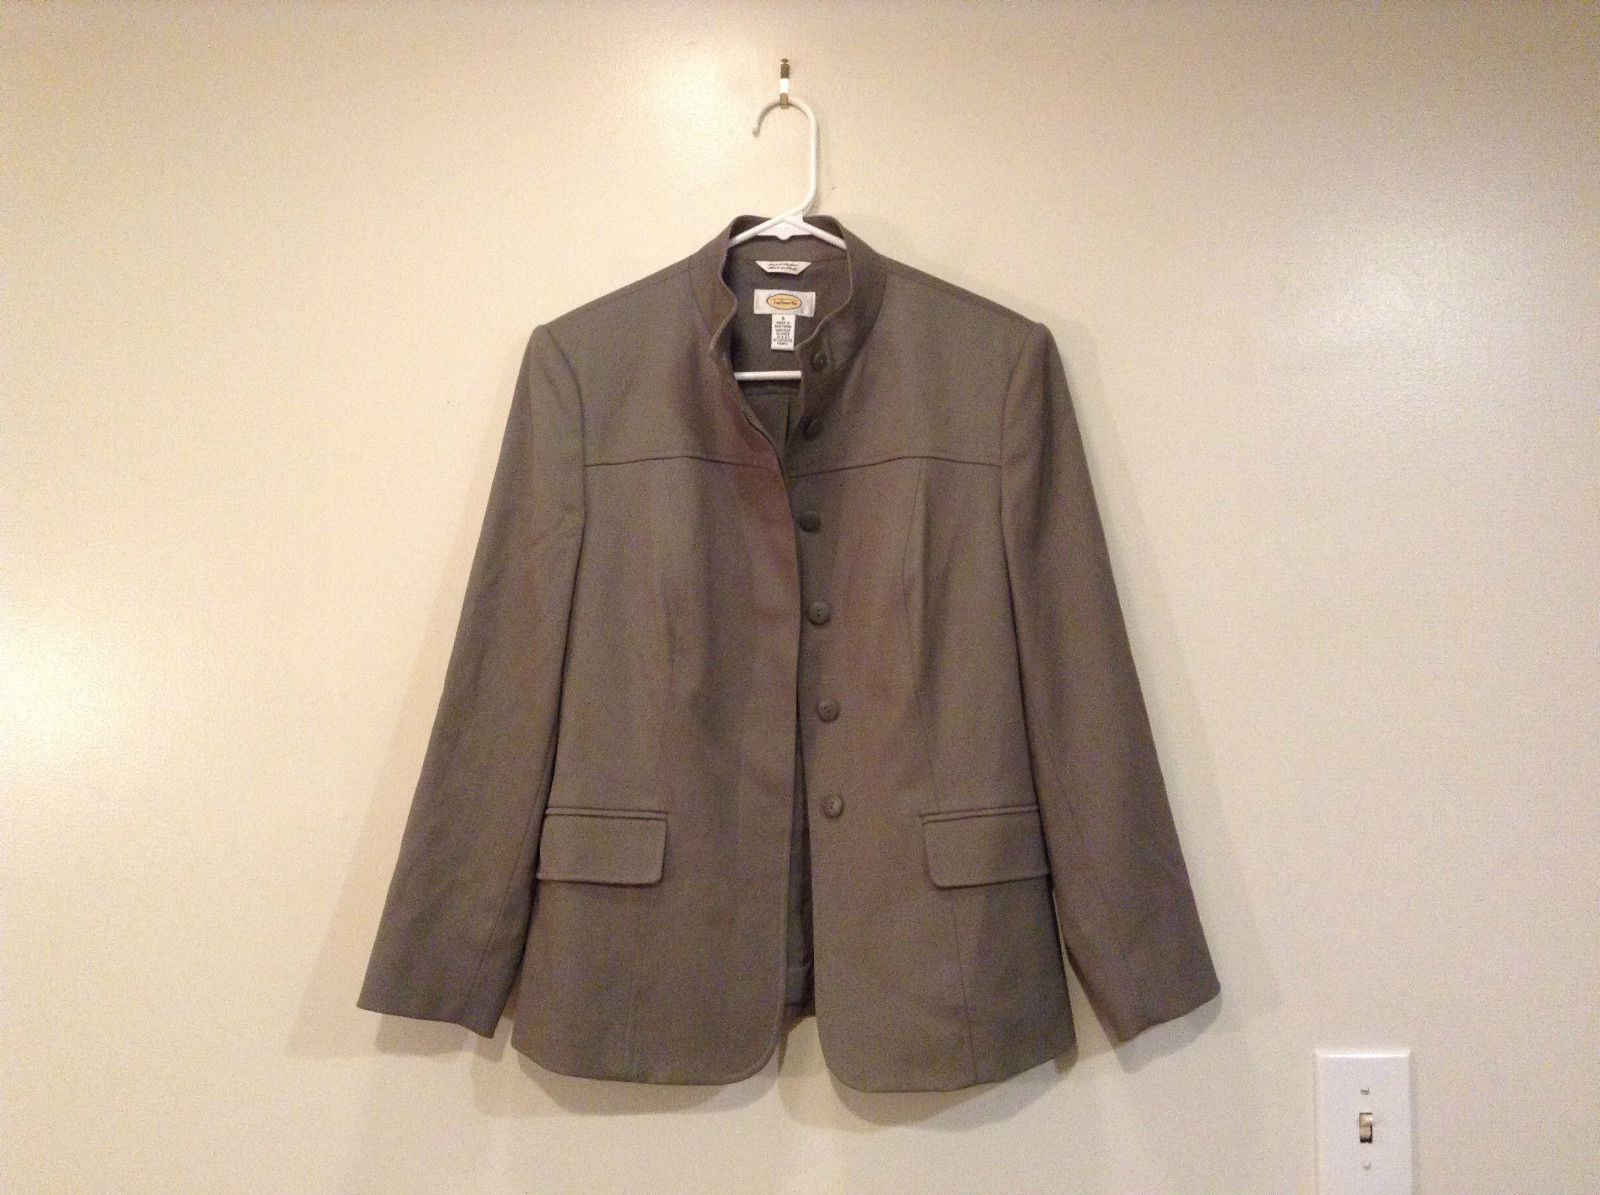 Talbots Gray Light Lined Blazer Size 6 Stand Collar Front Hidden Button Closure